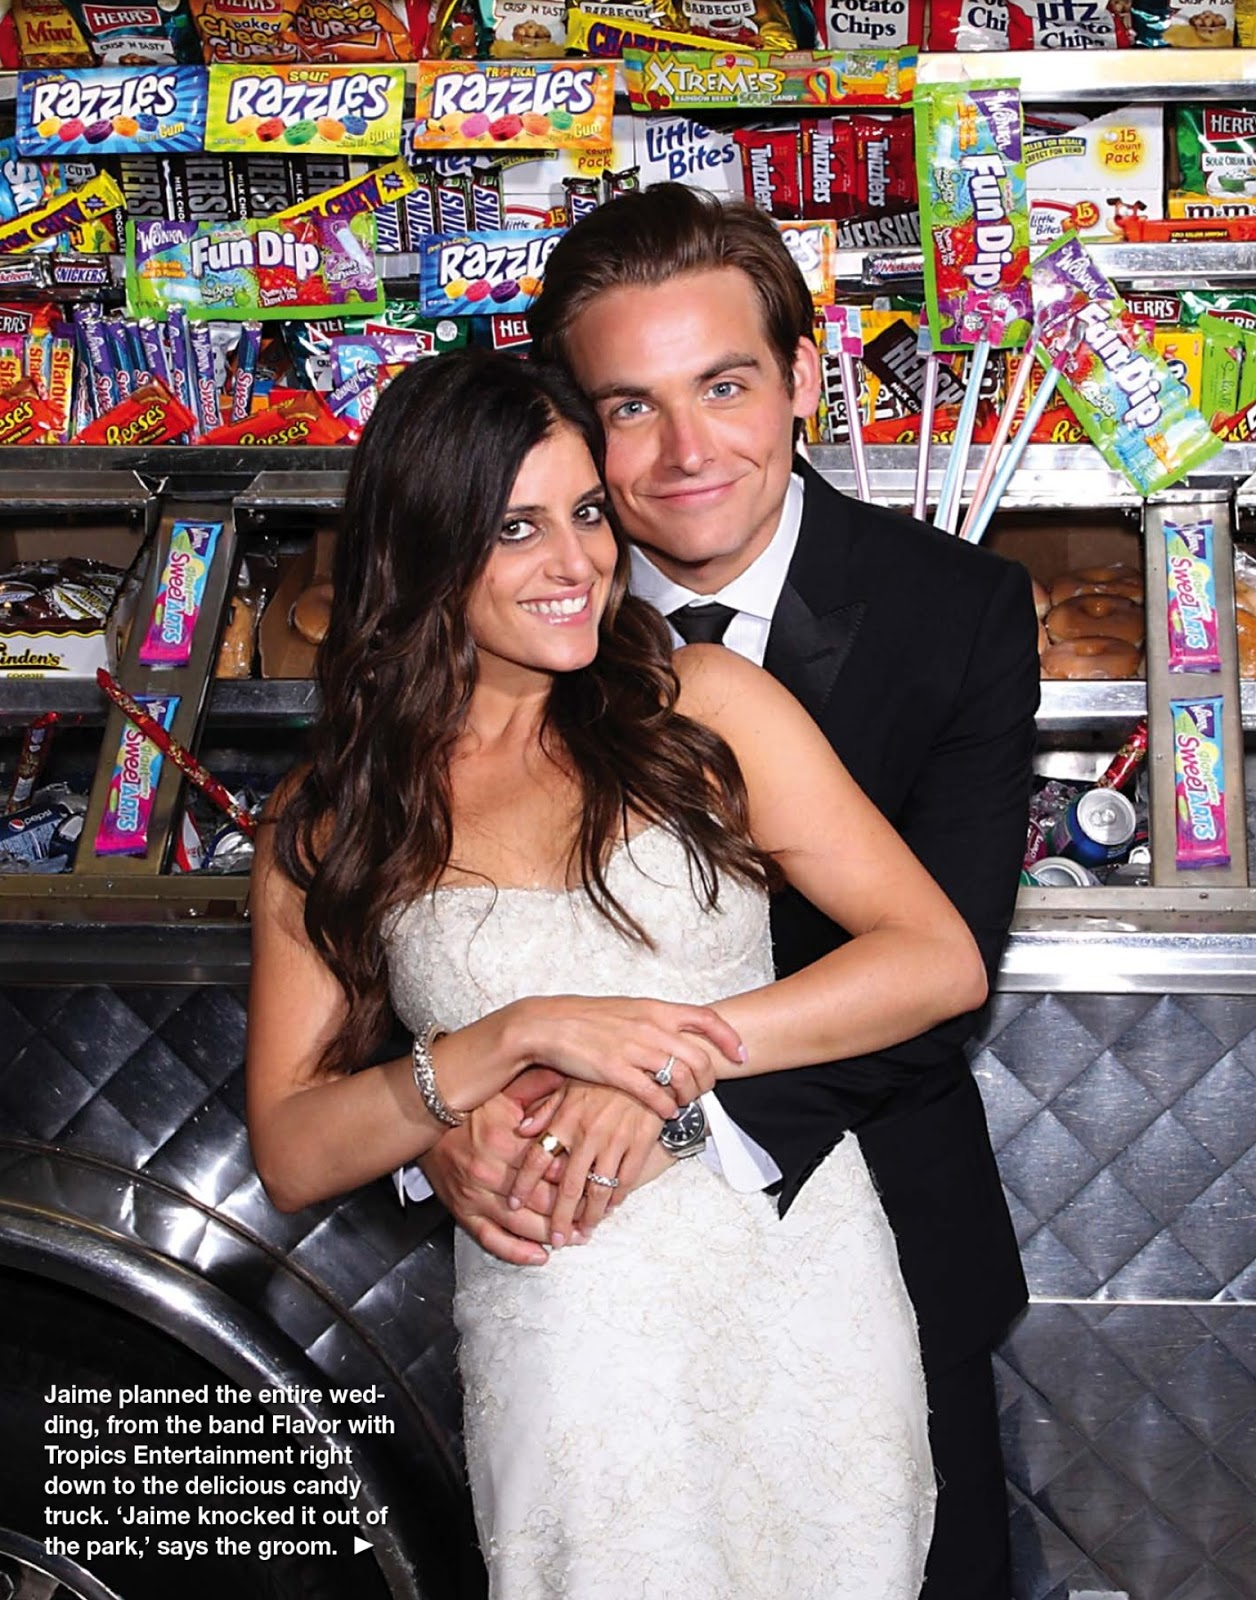 kevin zegers dating jamie feld and